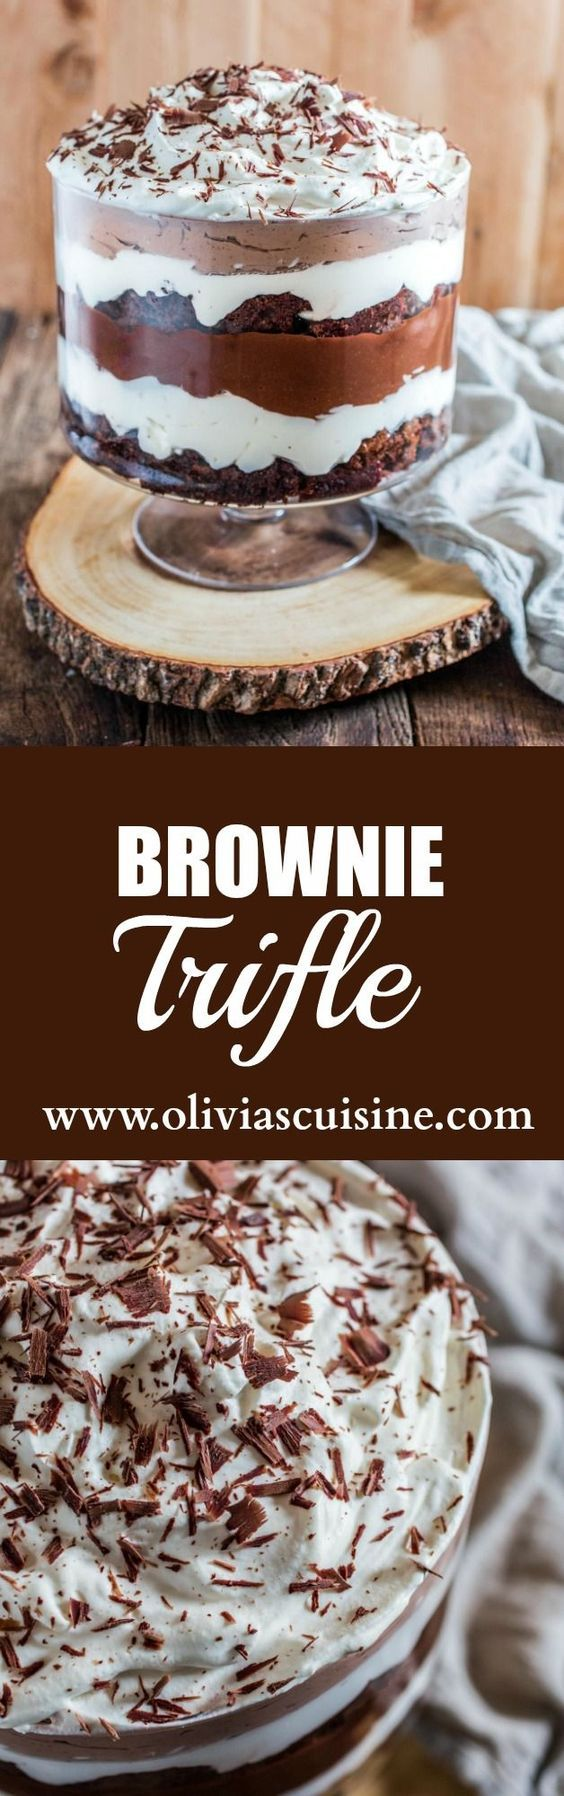 Brownie Trifle   www.oliviascuisine.com   An impressive, easy and rich dessert that feeds a crowd! All you have to do is layer brownies, whipped cream and chocolate pudding. What could be easier than that? :) #ad #mixinmoments